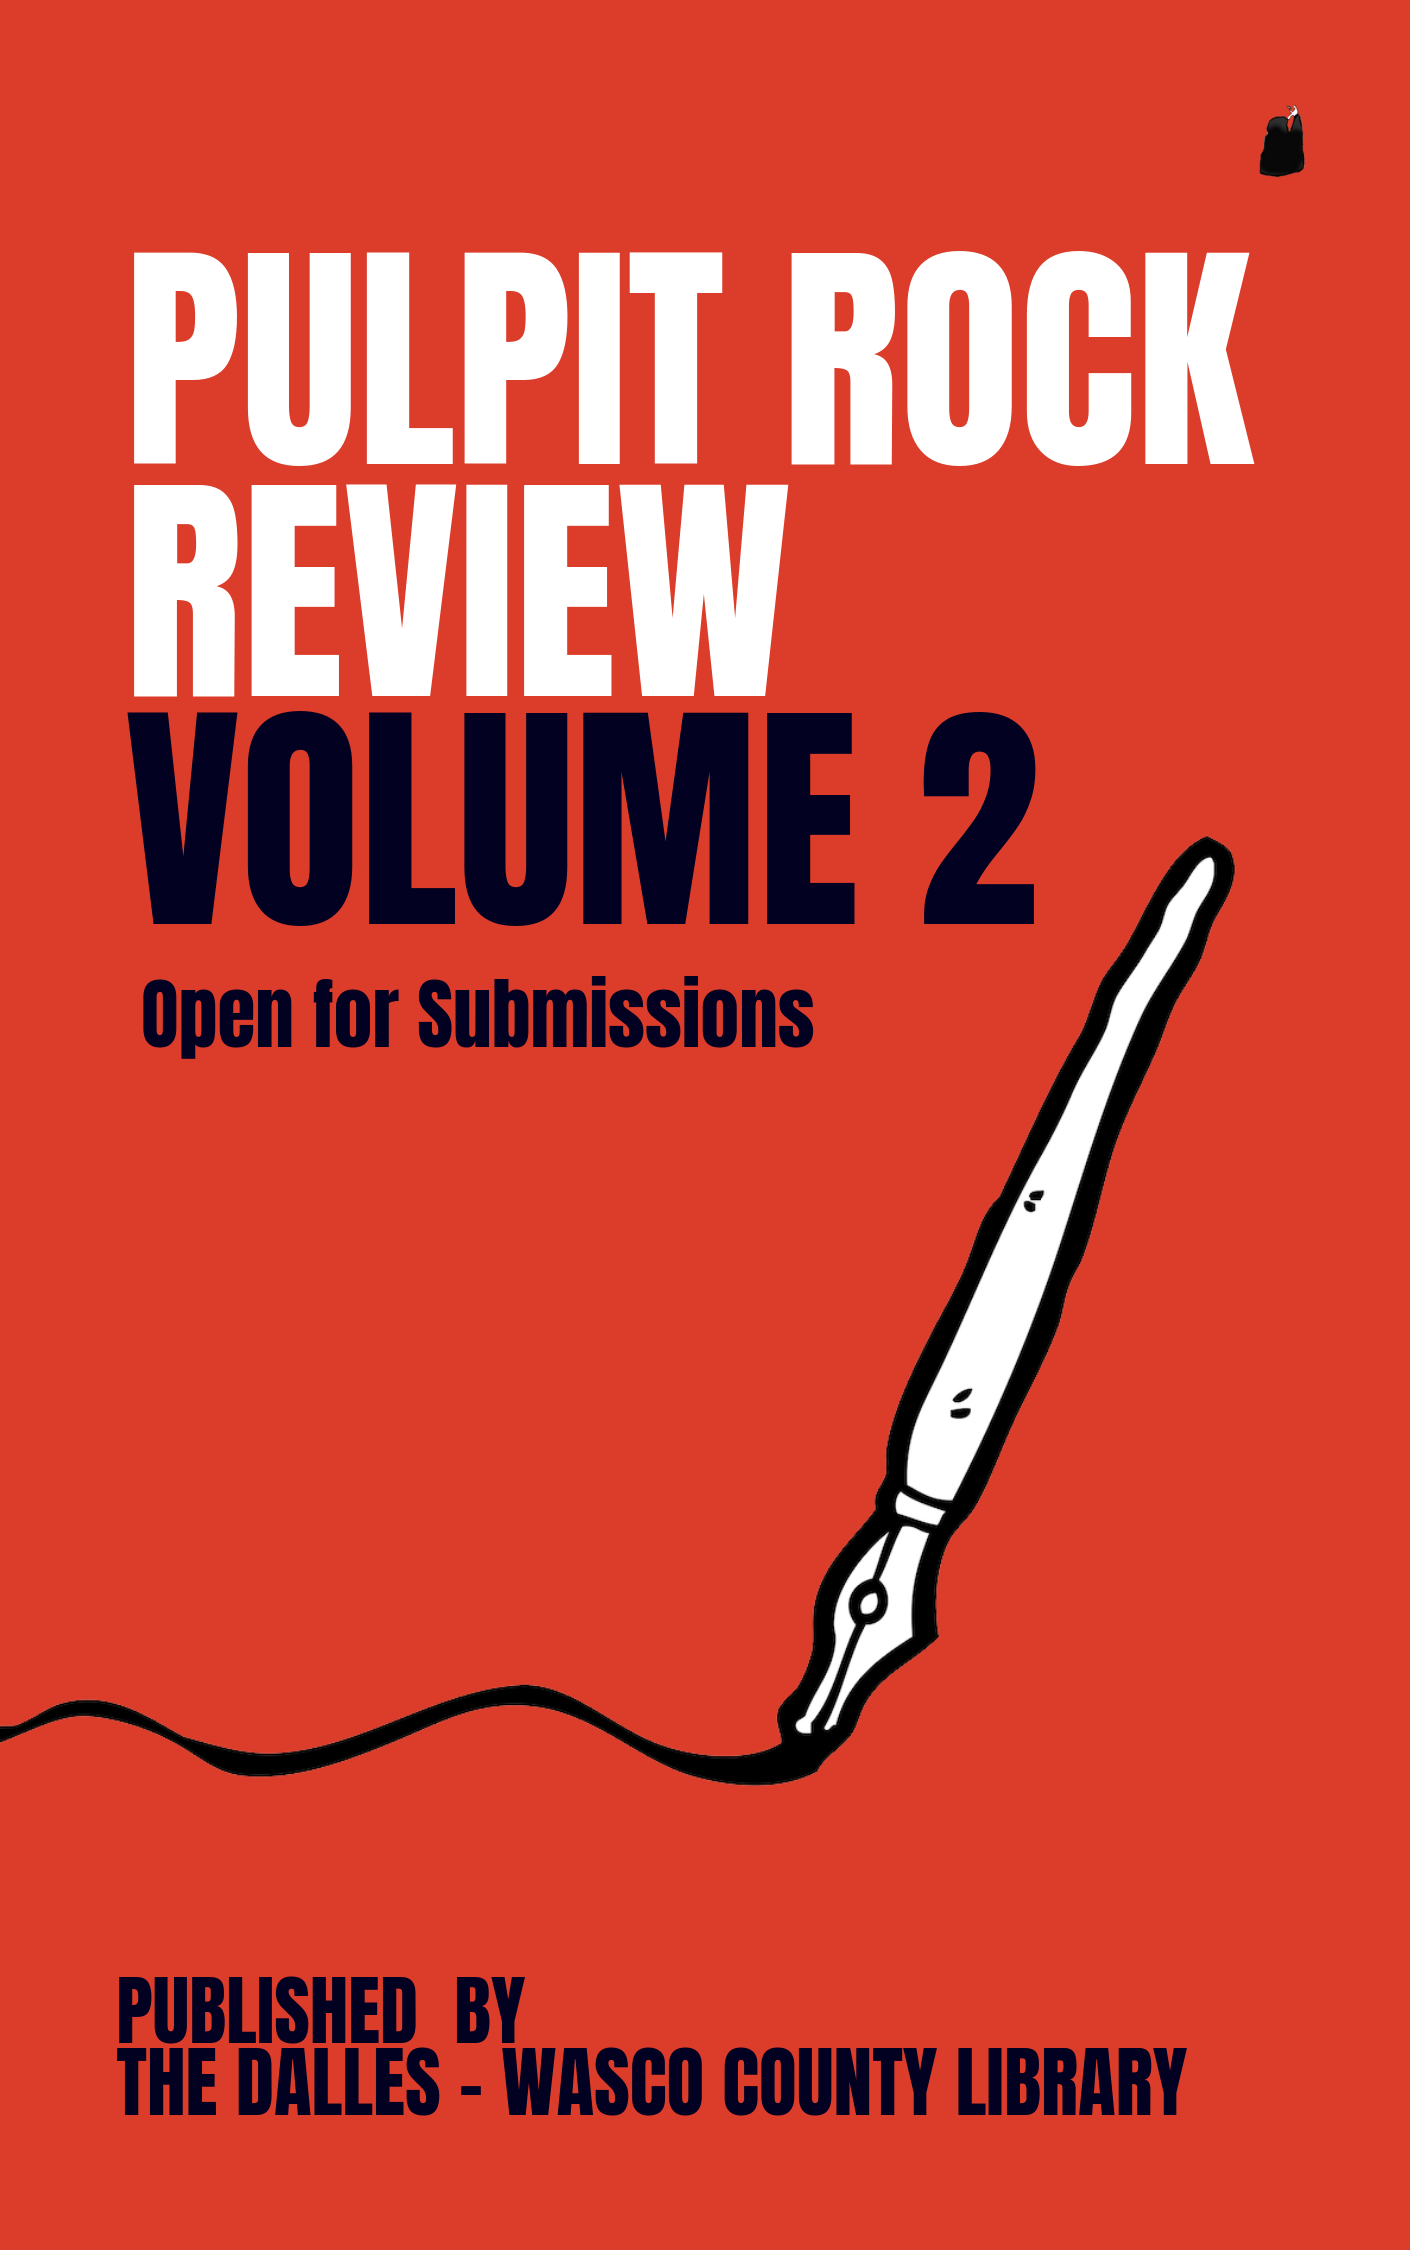 pulpit rock review volume 2 - open for SUBMISSIONS!rules AVAILABLE hereWavier Forms are AVAILABLE hereemail your submissions to:thepulpitrockreview@gmail.com